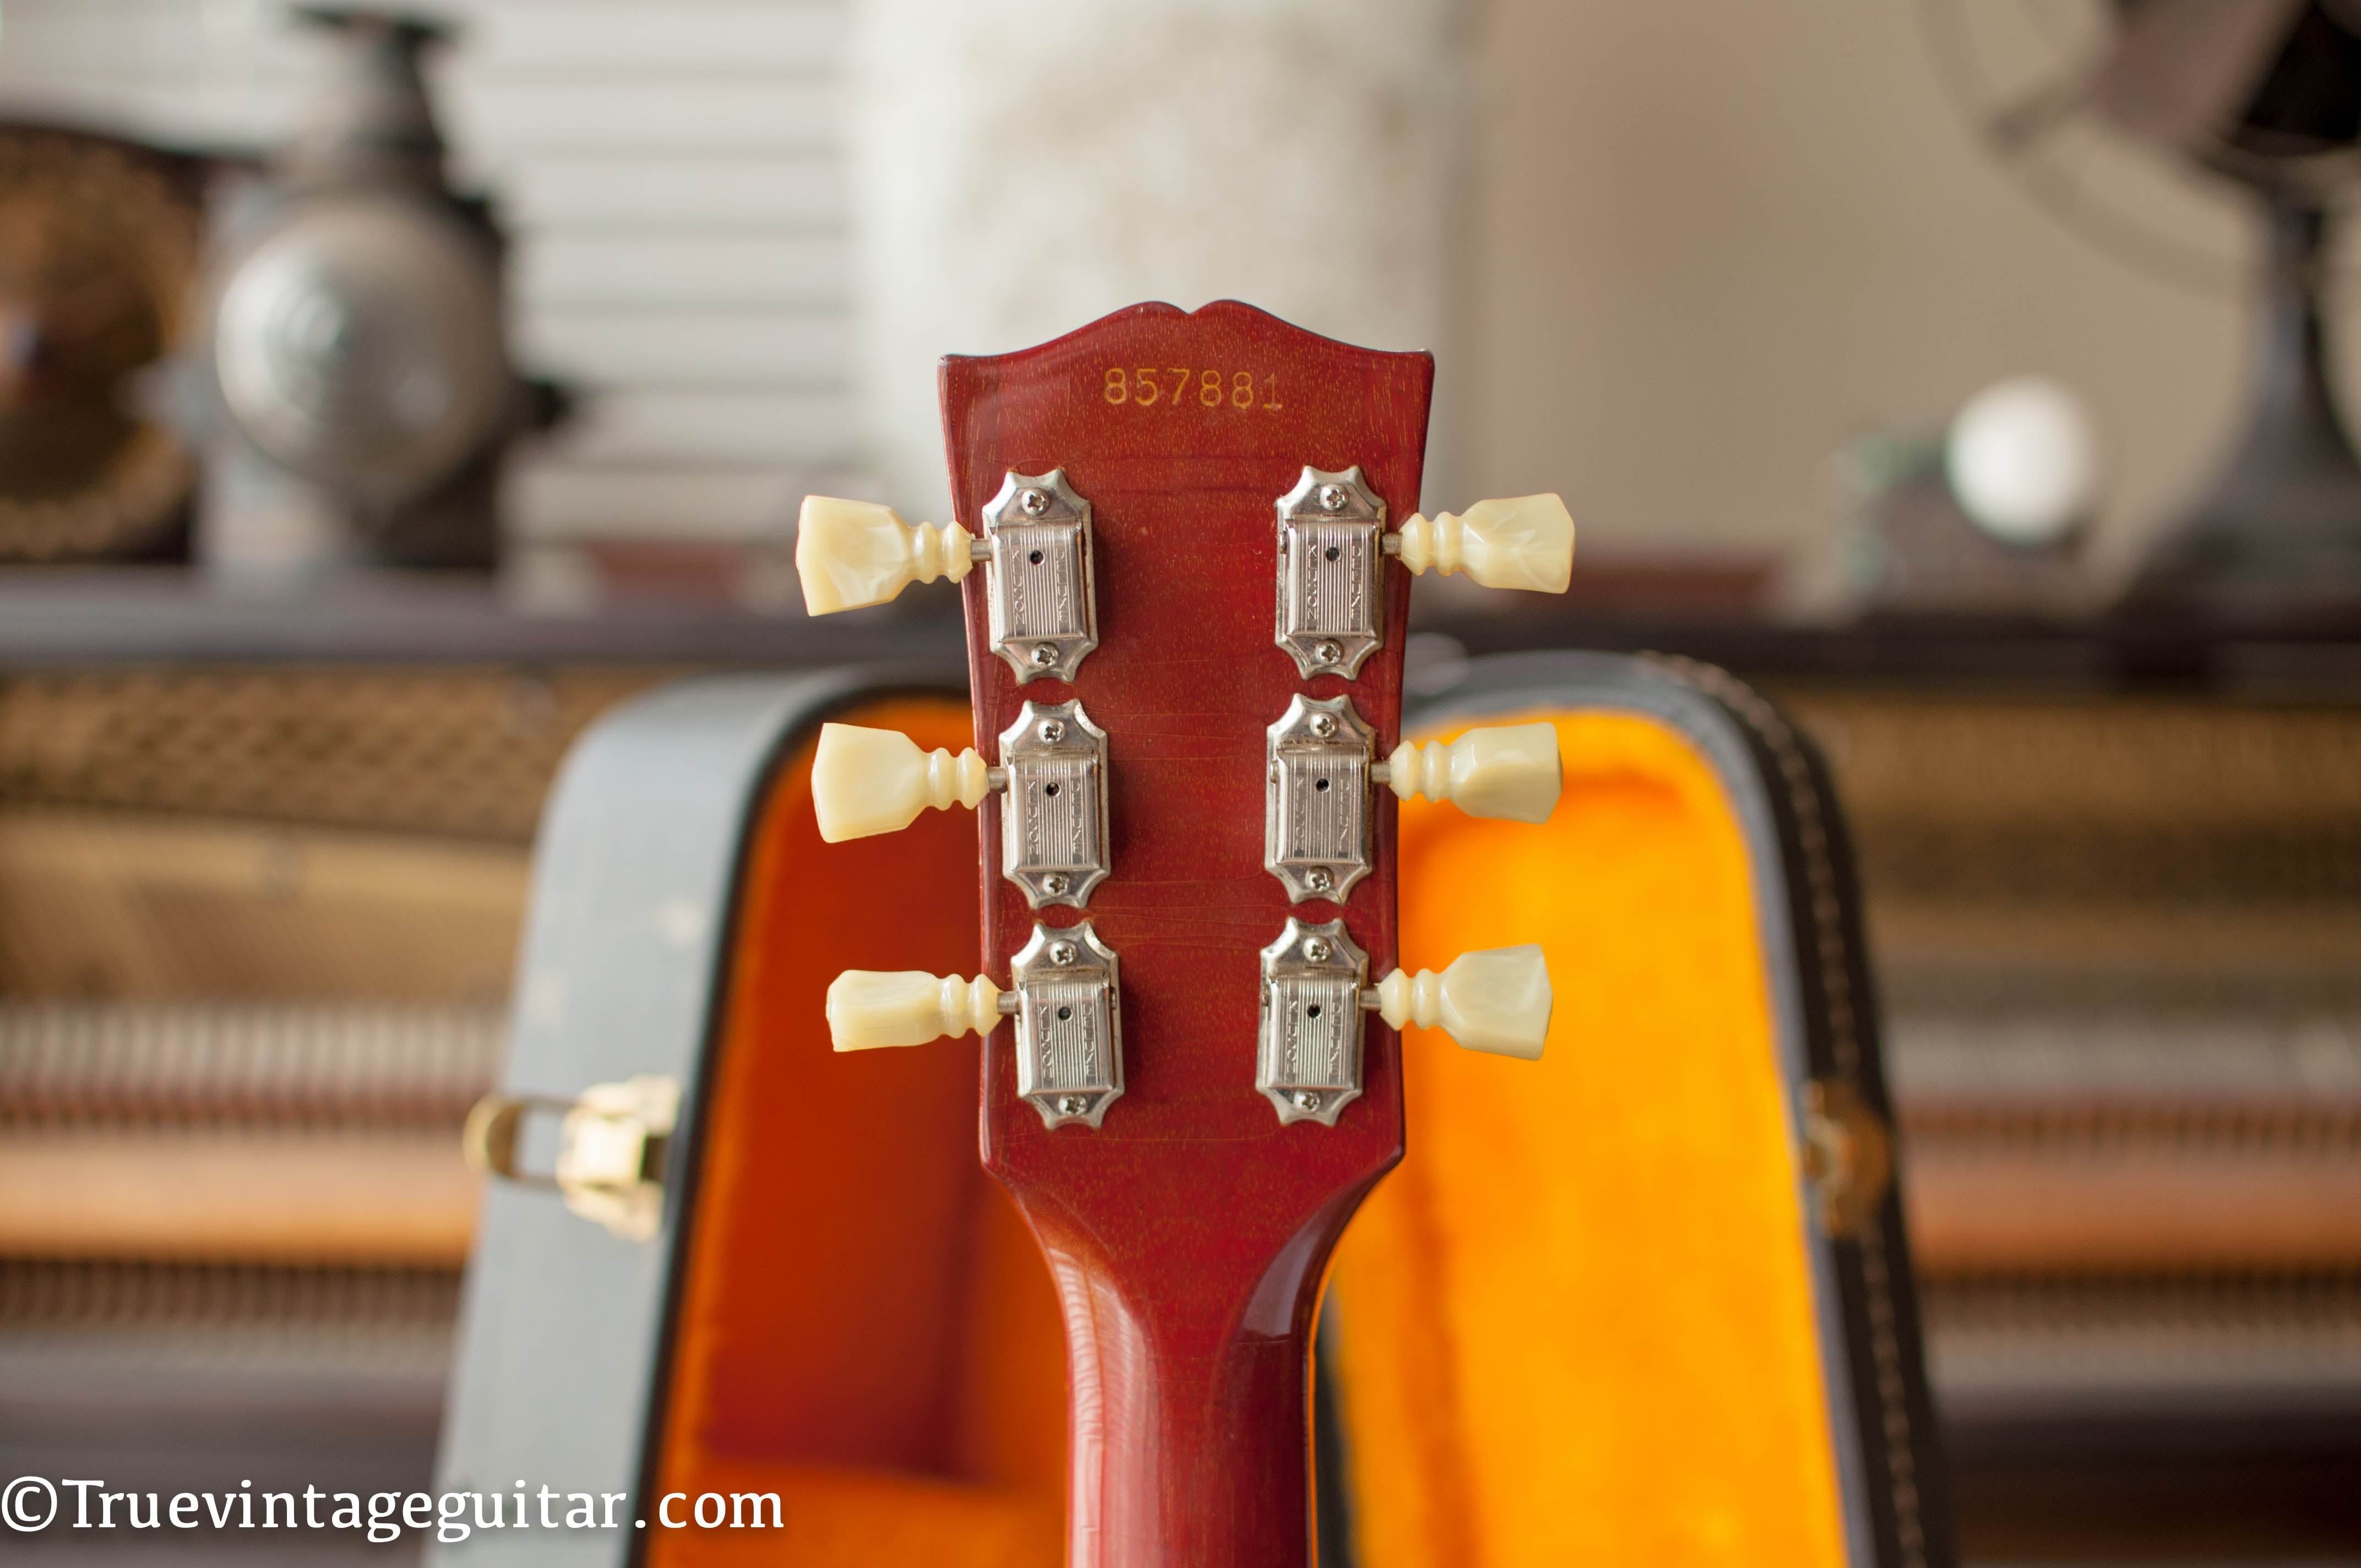 Back of neck, Kluson double line tuners, Vintage 1966 Gibson ES-335 tdc electric guitar